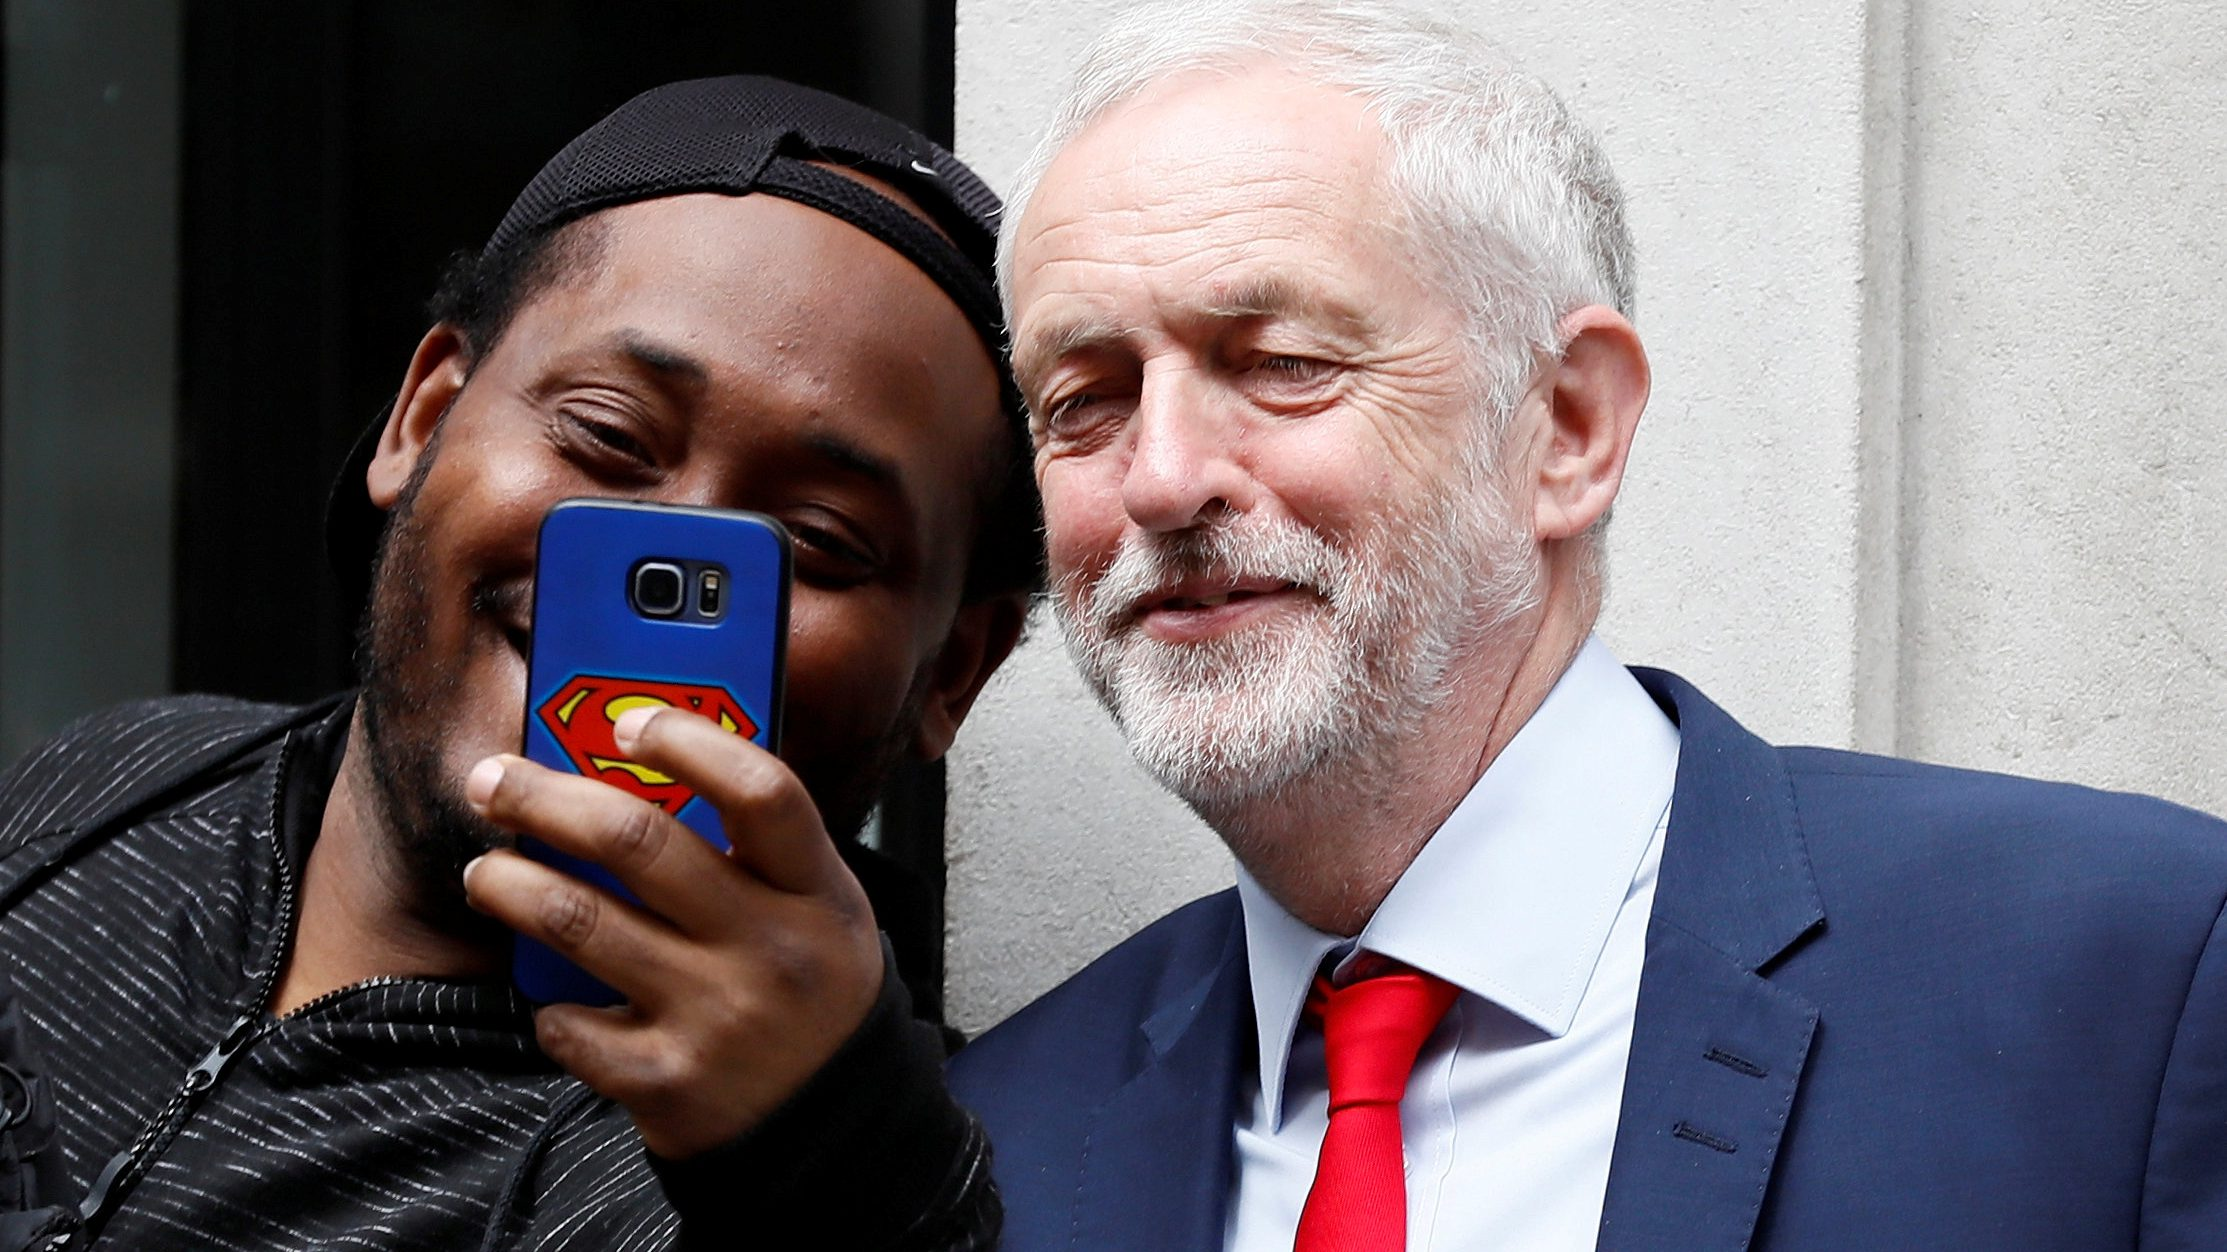 Jeremy Corbyn, the leader of Britain's opposition Labour Party, poses for a selfie as he leaves BBC radio studios in London